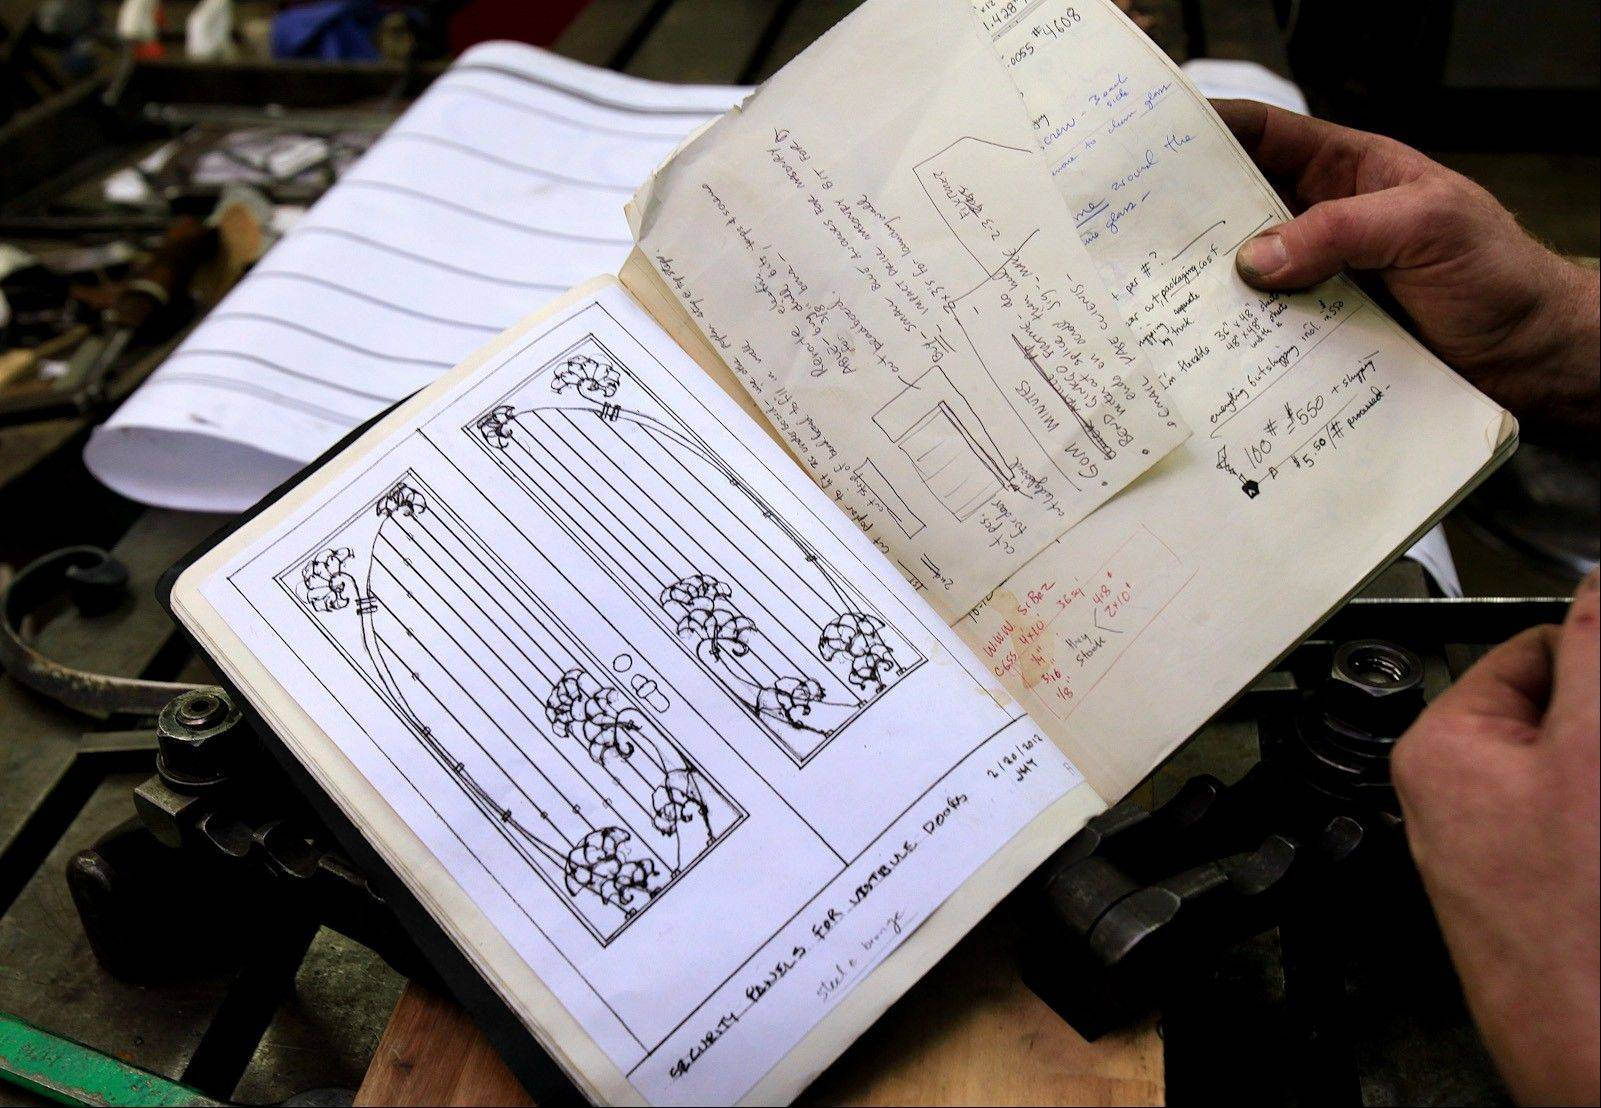 Metalsmith Chris Rand holds a notebook that shows the first design of the door he is working on.